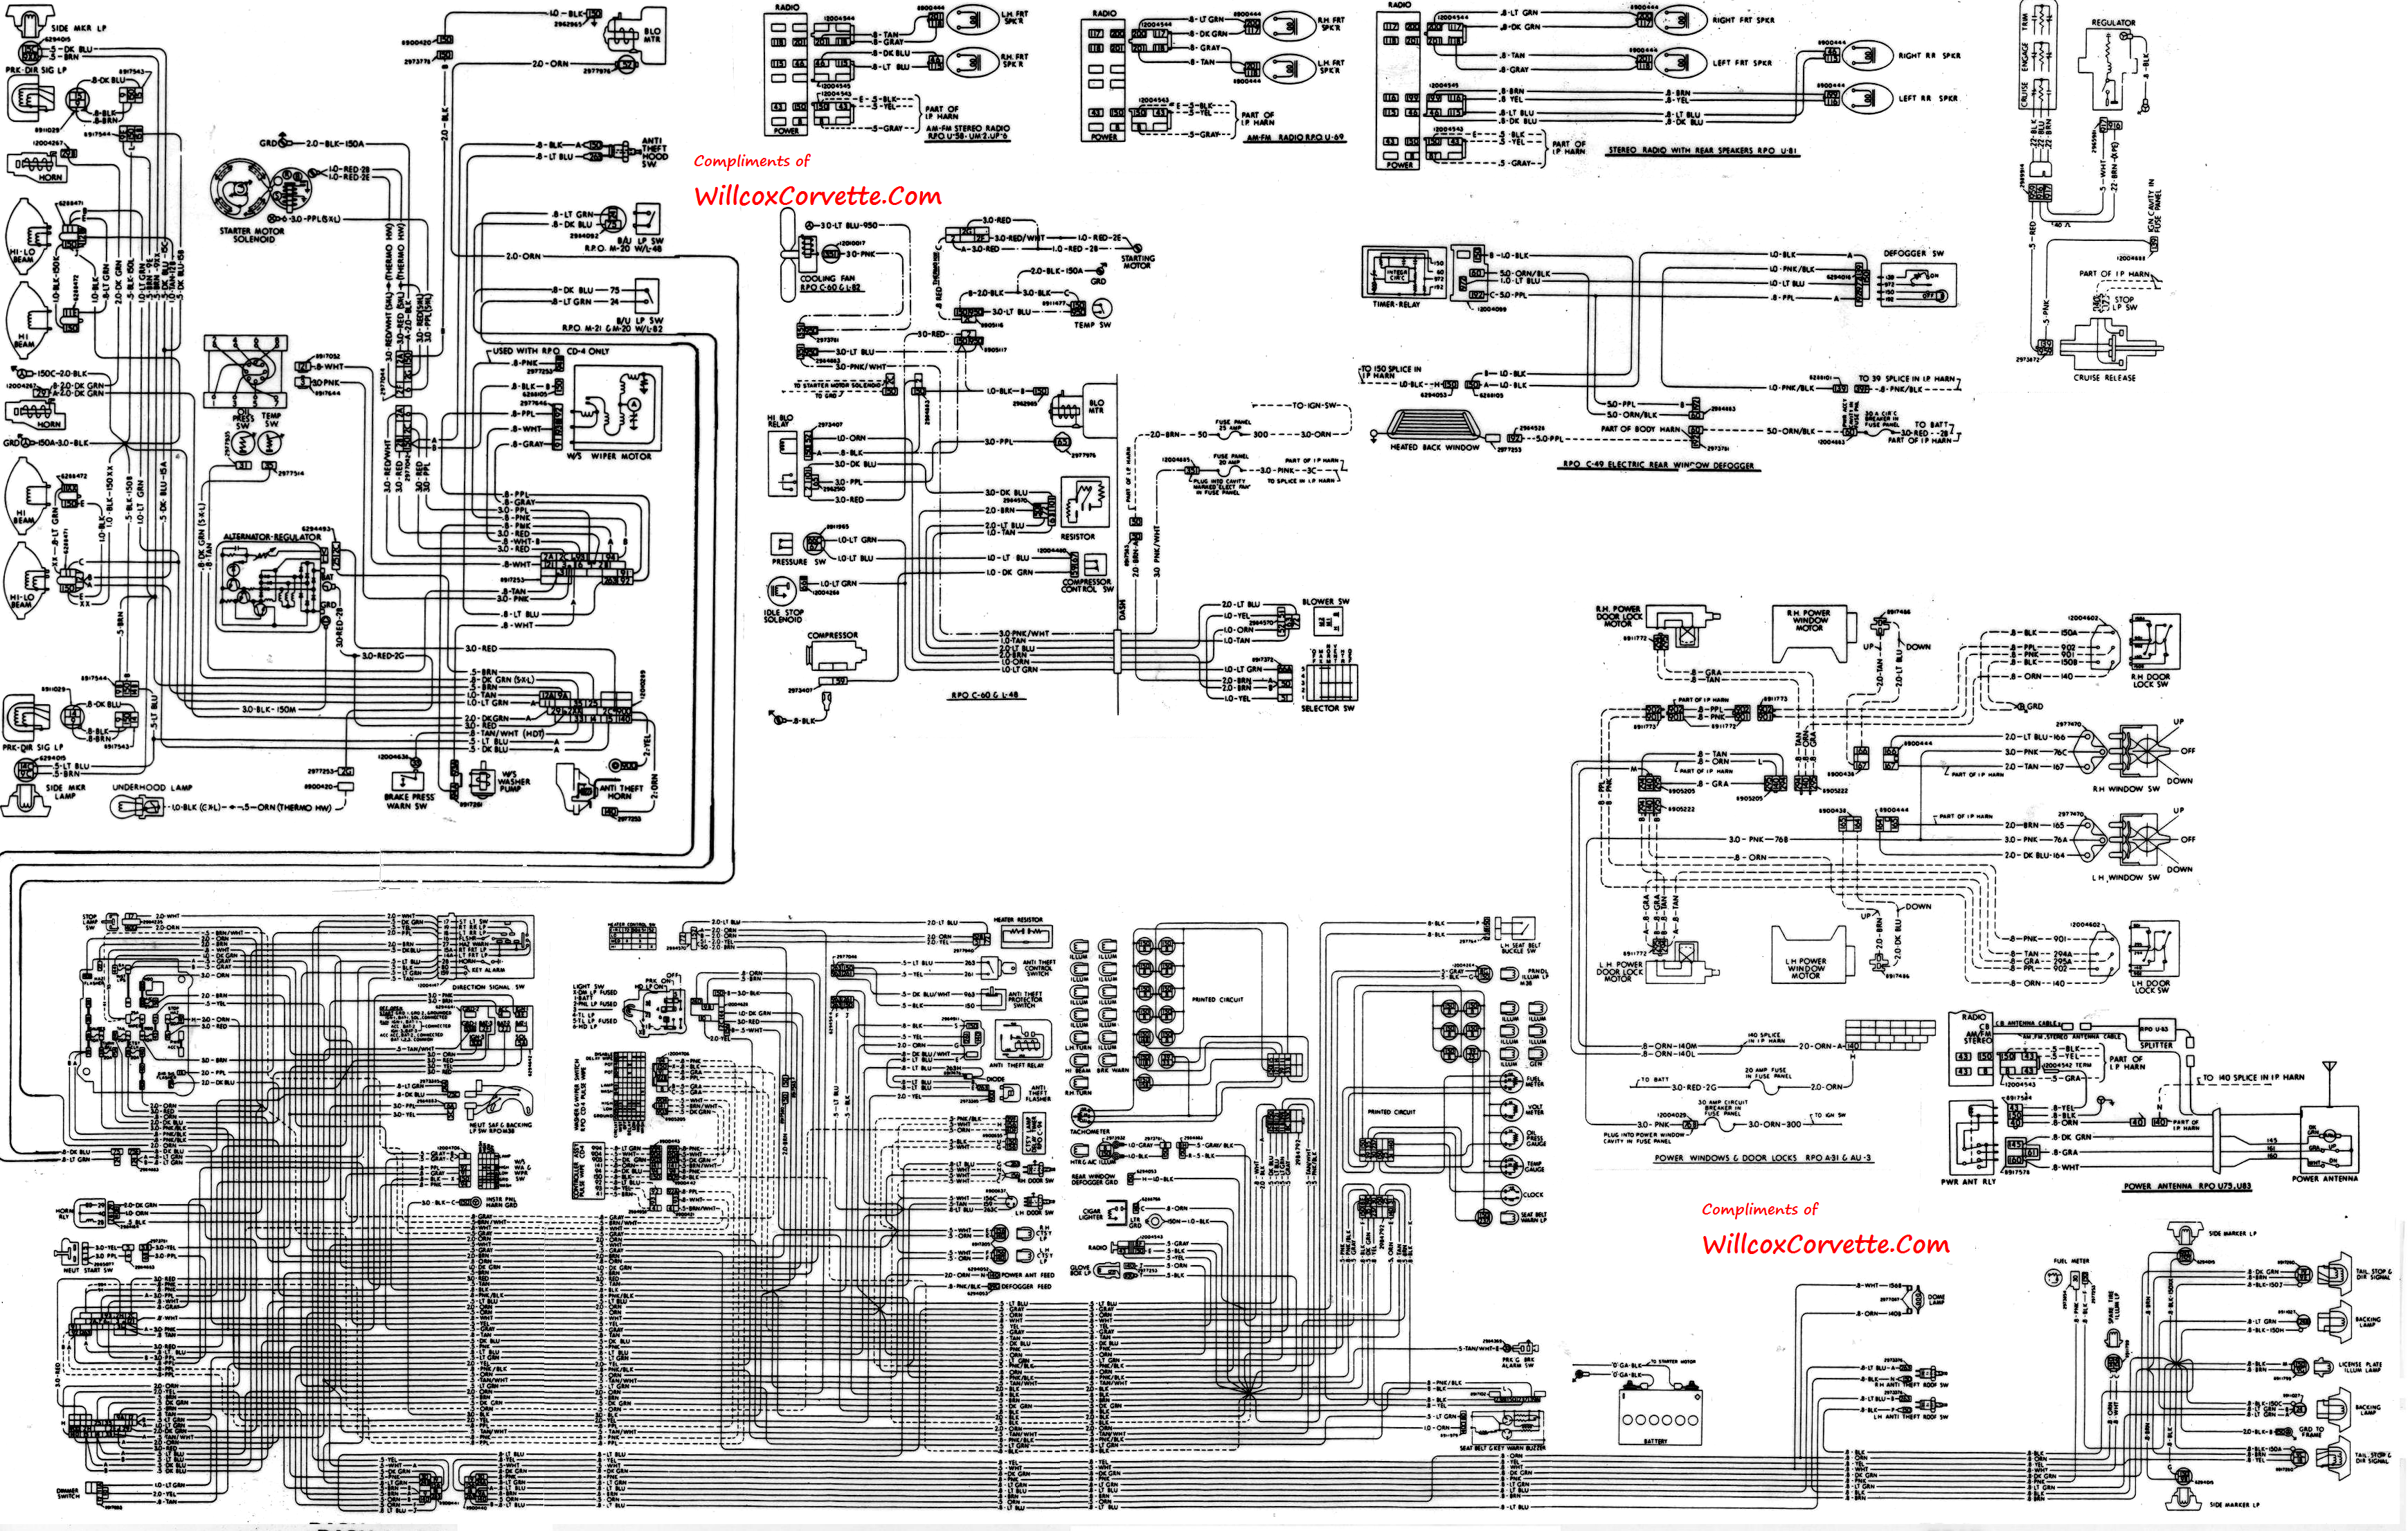 1979 wire diagram corvette wiring diagram corvette parts diagram \u2022 wiring diagrams 1979 volvo 242 dl wiring diagram at aneh.co